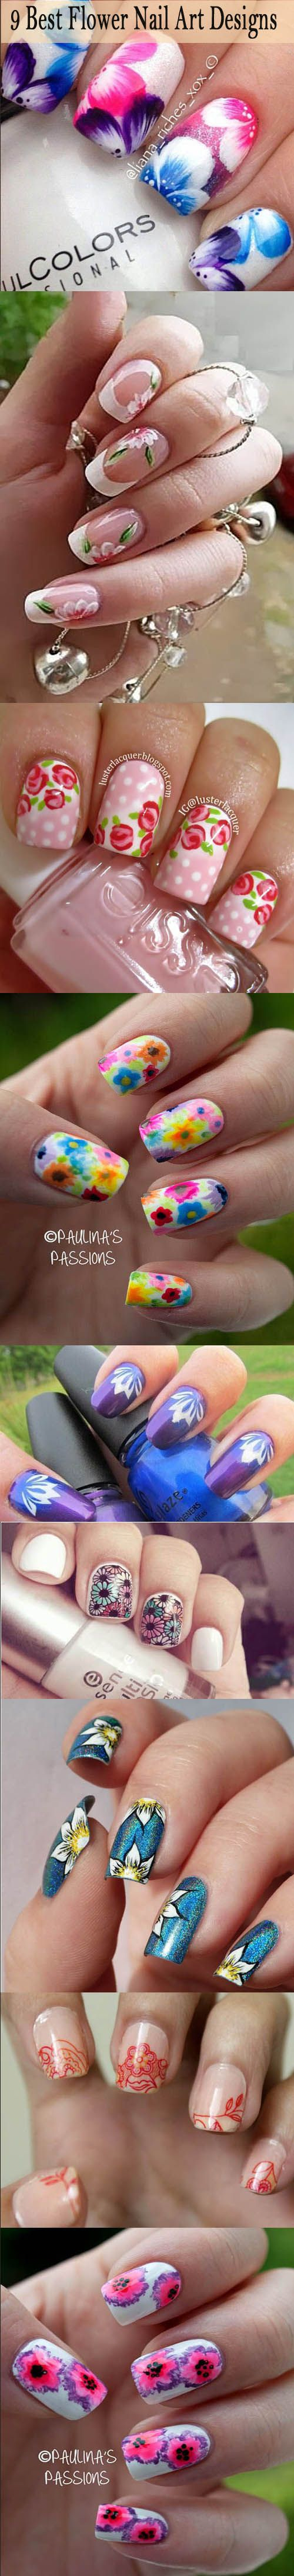 9 Best Flower Nail Art Designs Discover and share your nail design ideas on https://www.popmiss.com/nail-designs/